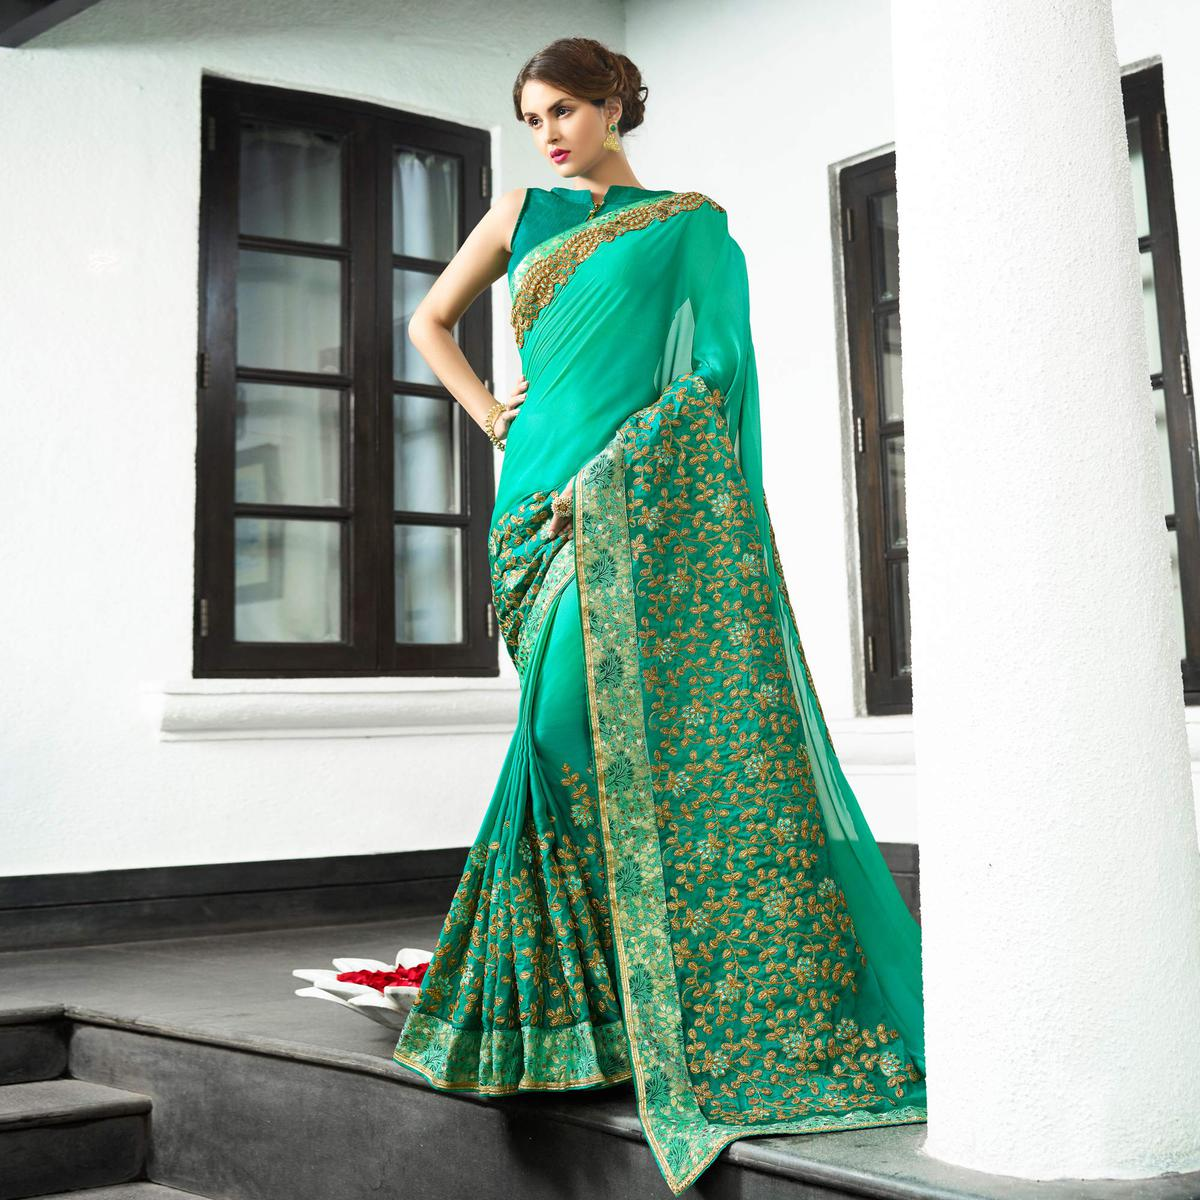 Dazzling Teal Green Colored Partywear Embroidered Satin Silk Saree